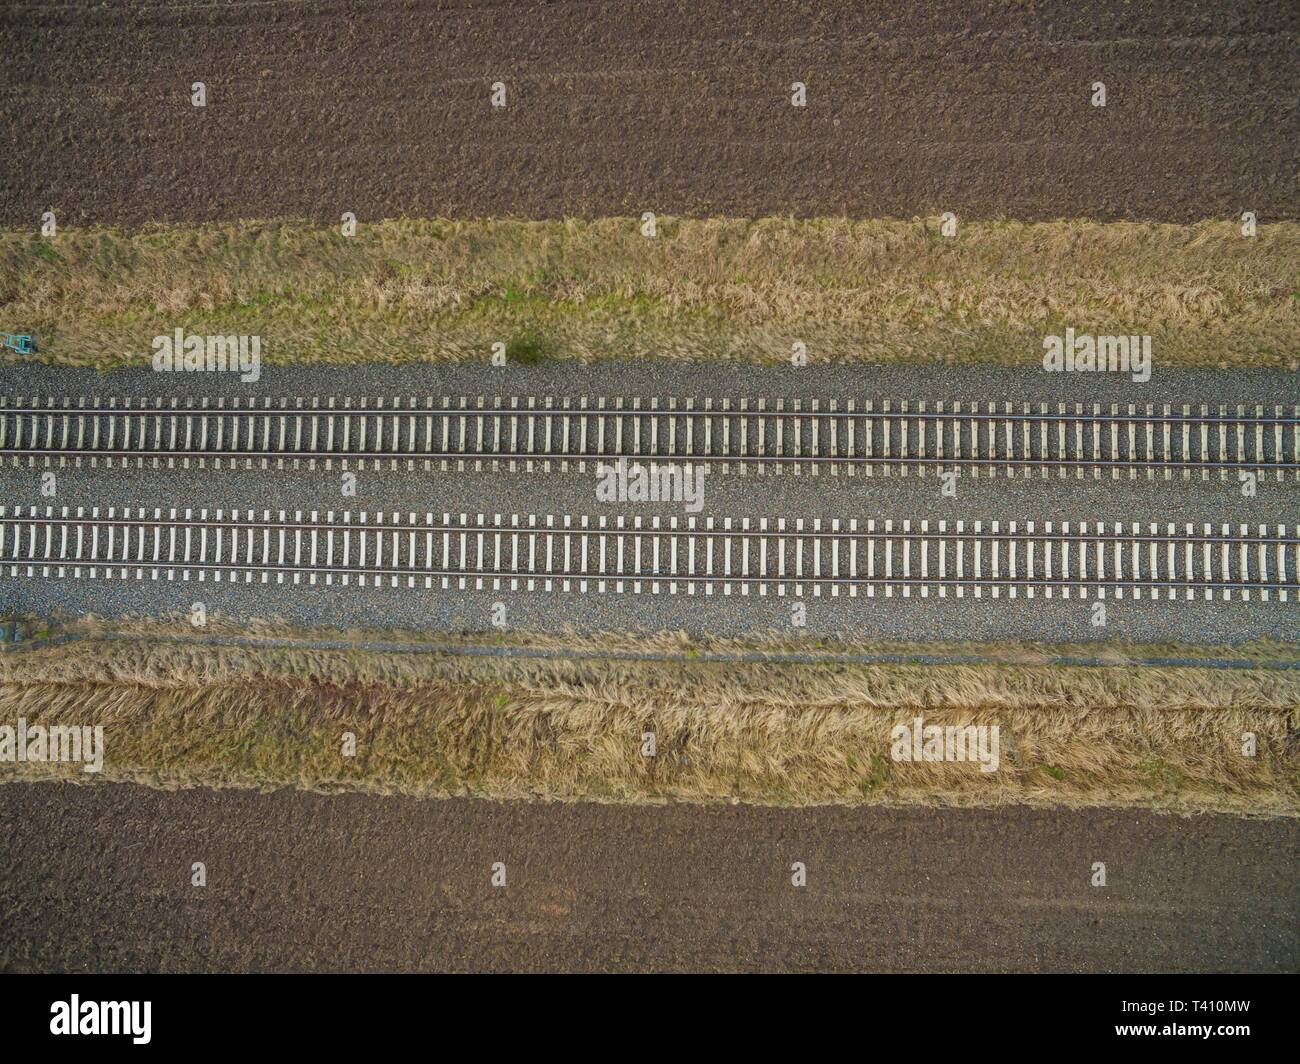 aerial view of railroad tracks in the backcountry between freshly plowed farmland - top view of the train tracks - Stock Image